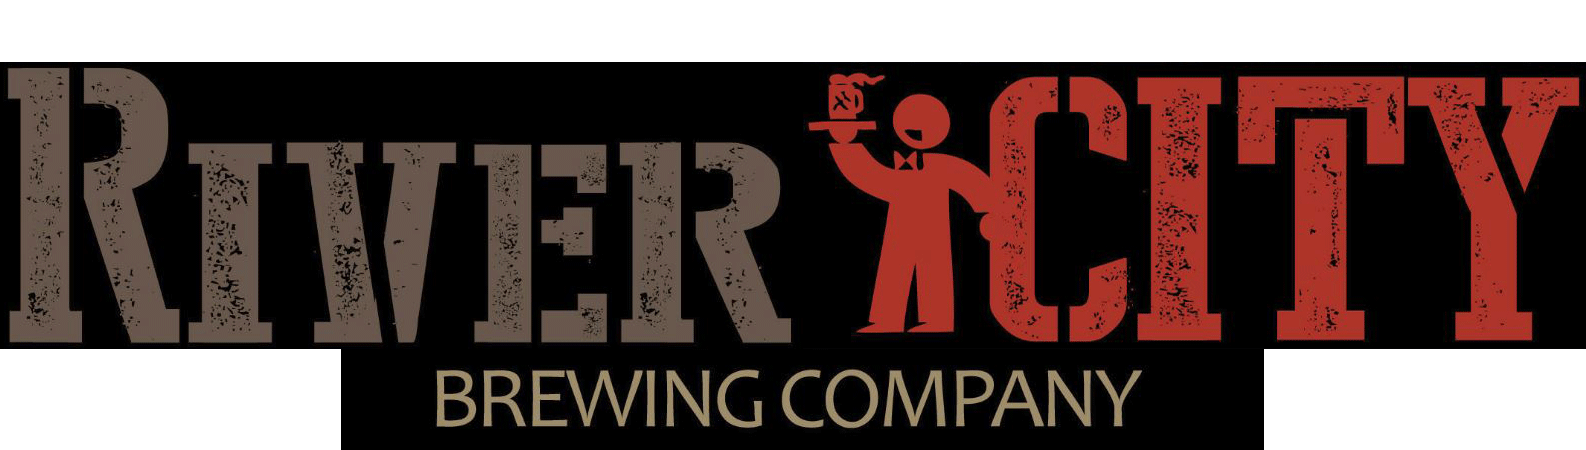 River City Brewing Company in Sacramento, CA